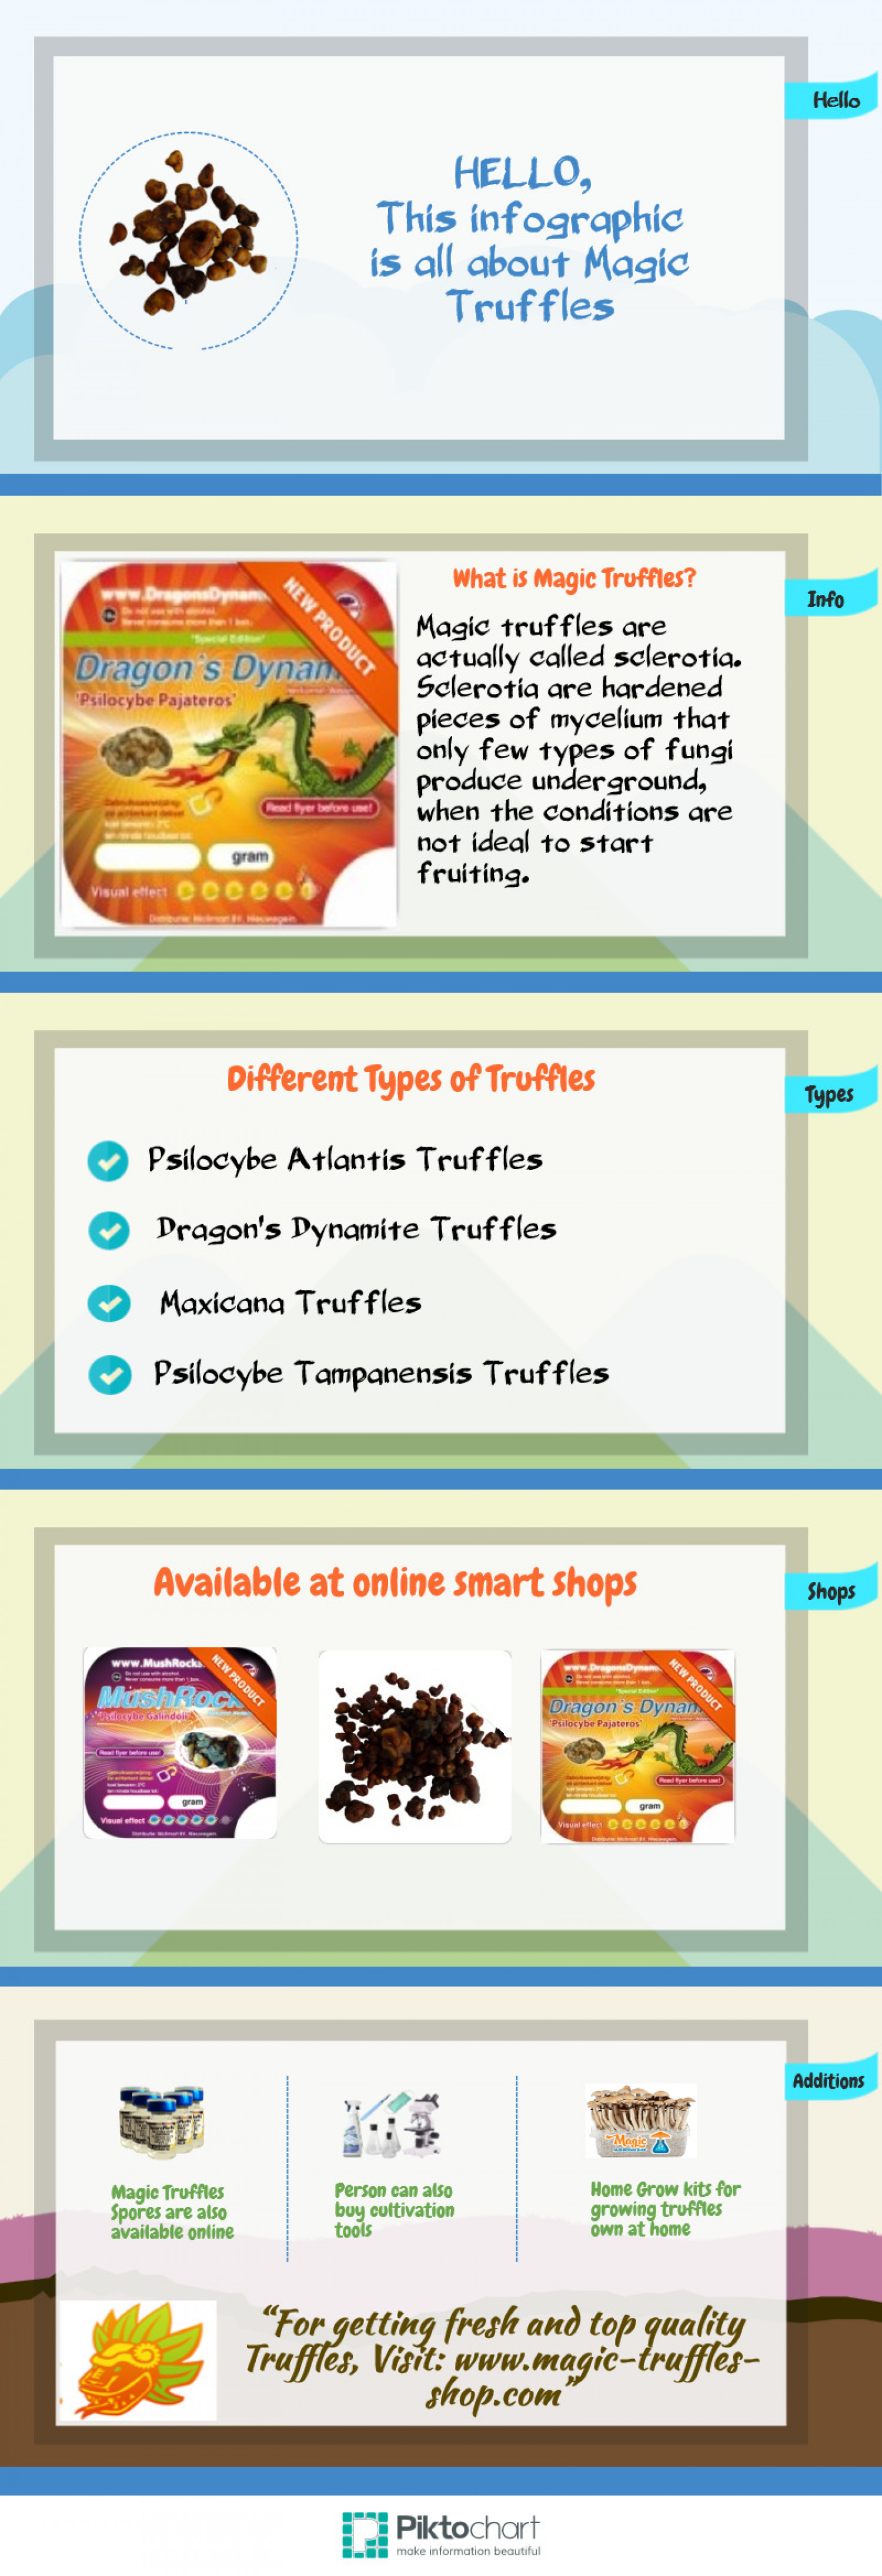 how to buy truffles online